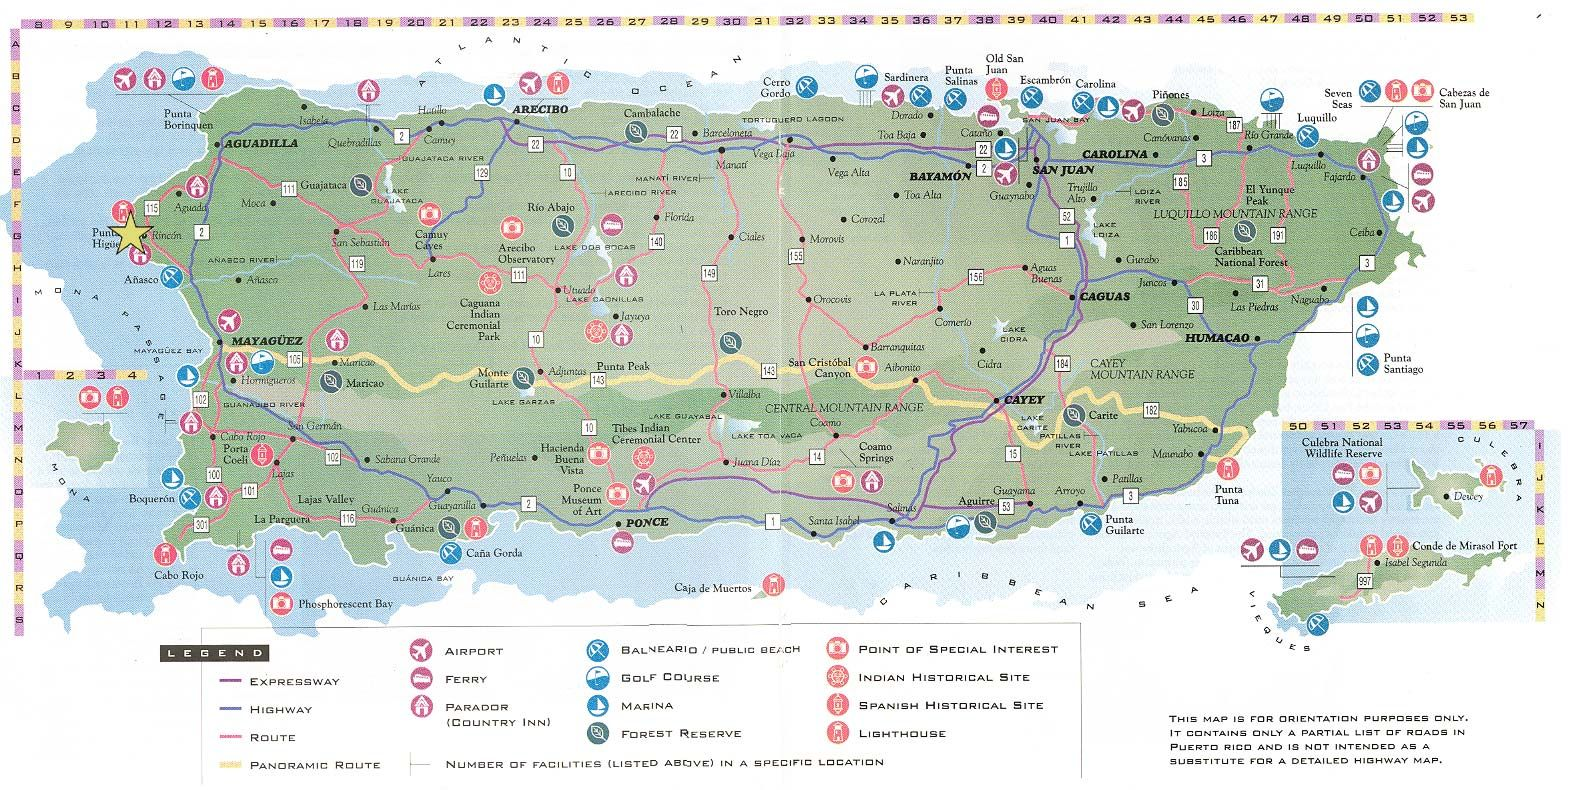 puerto rico map map of Puerto Rico Puerto Rico large detailed